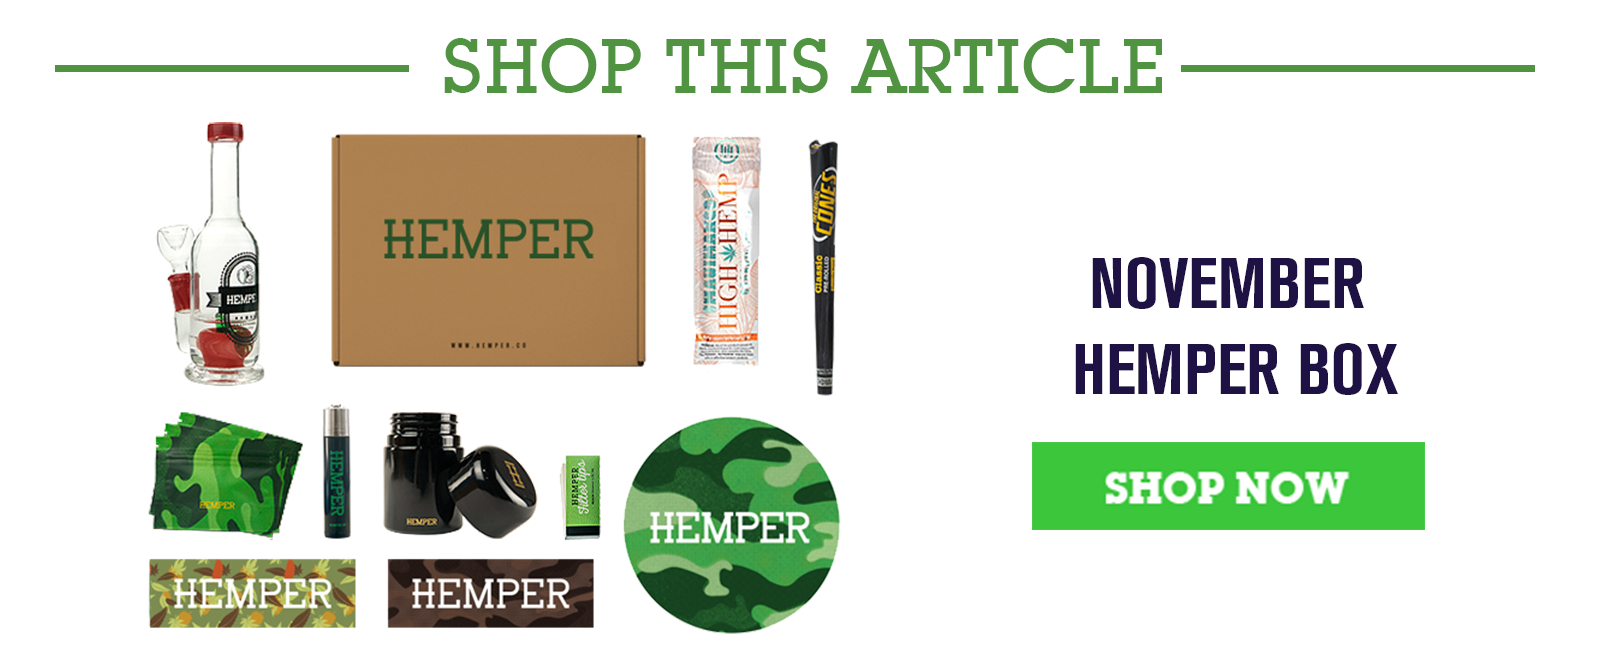 The November HEMPER Box